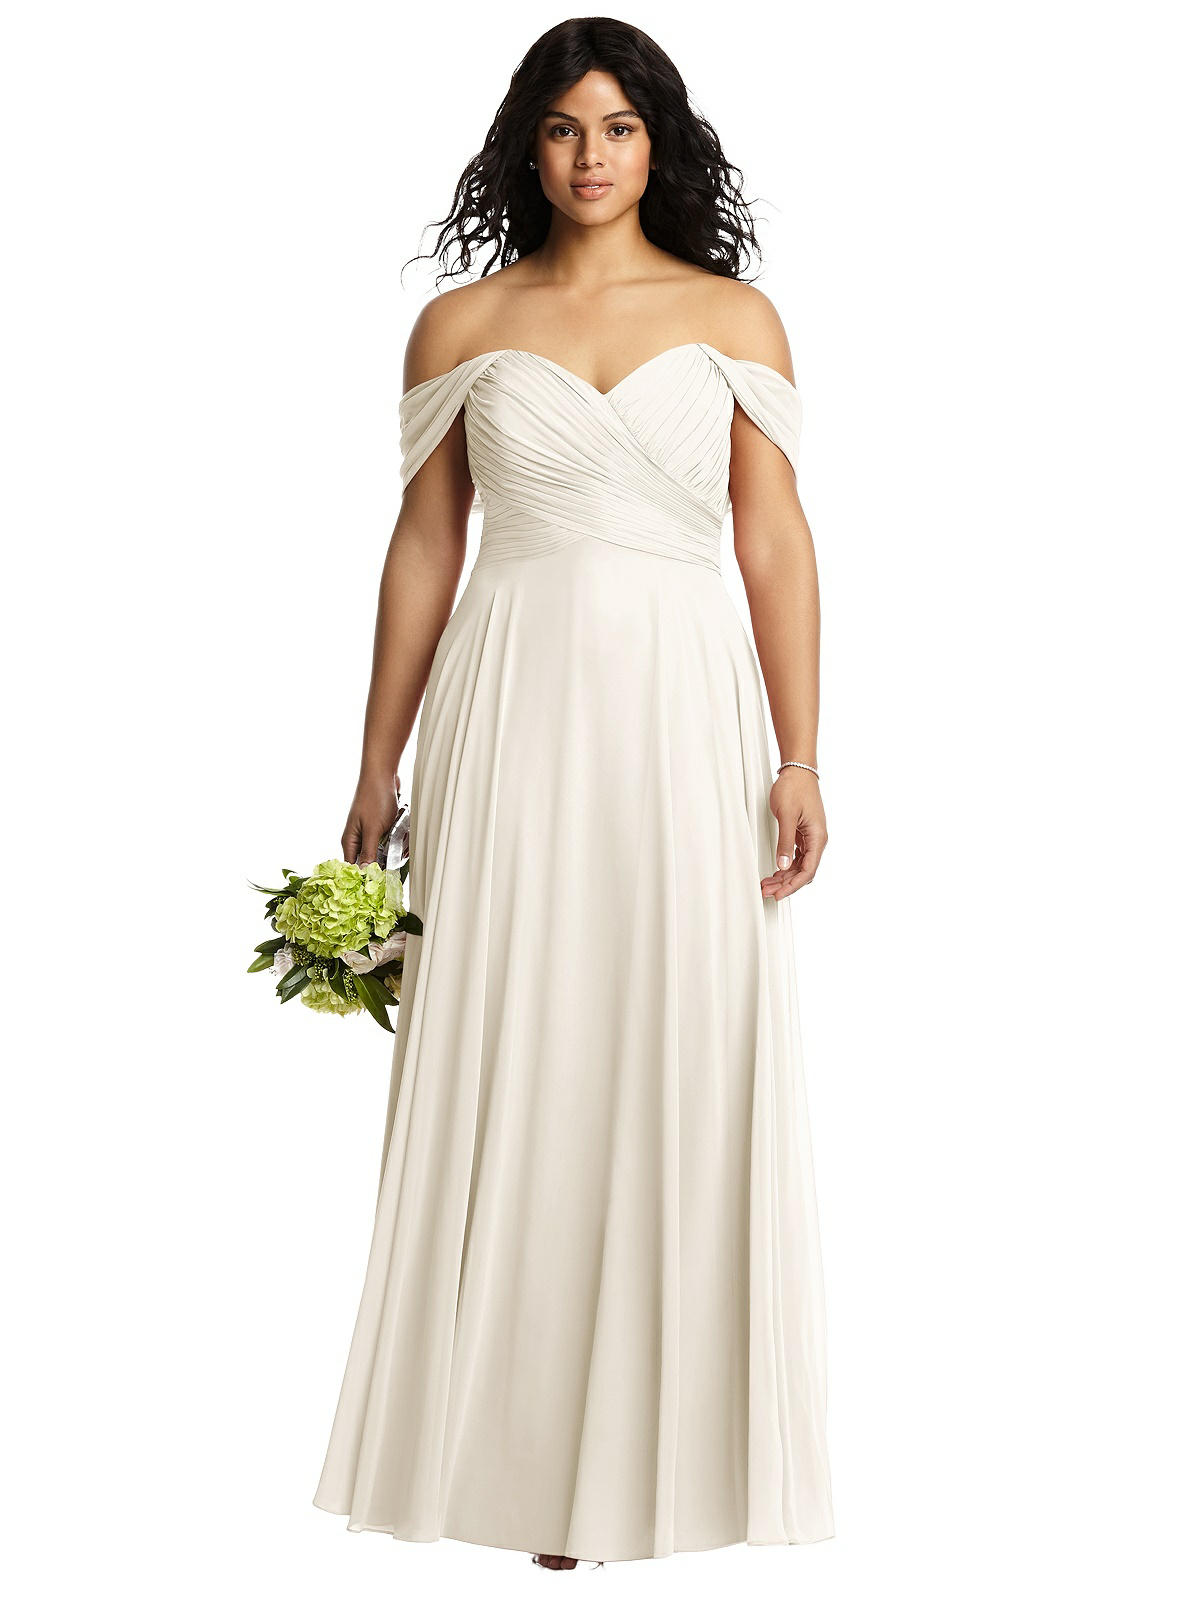 City Hall Wedding Dresses Archives Wedding Dresses For Budget Brides,Evening Dresses For Wedding Guests